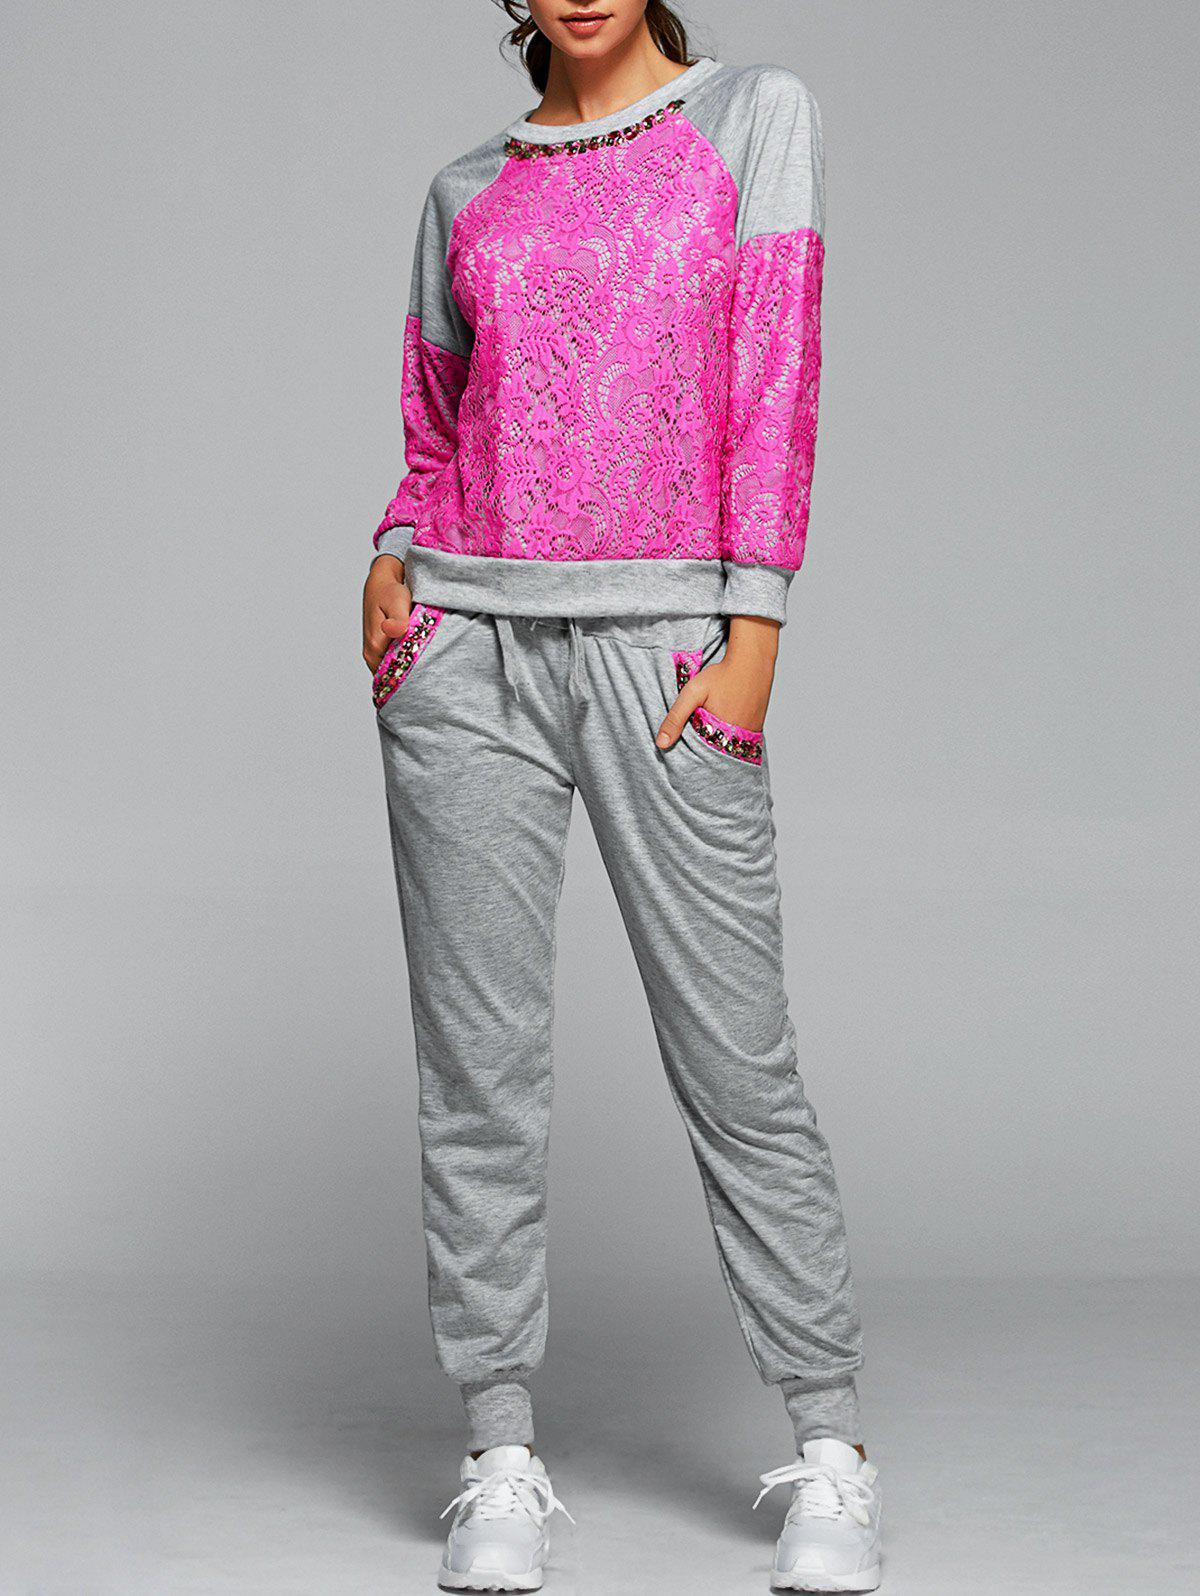 Dentelle Spliced ​​Sweatshirt Avec Pantalon Twinset - rose S